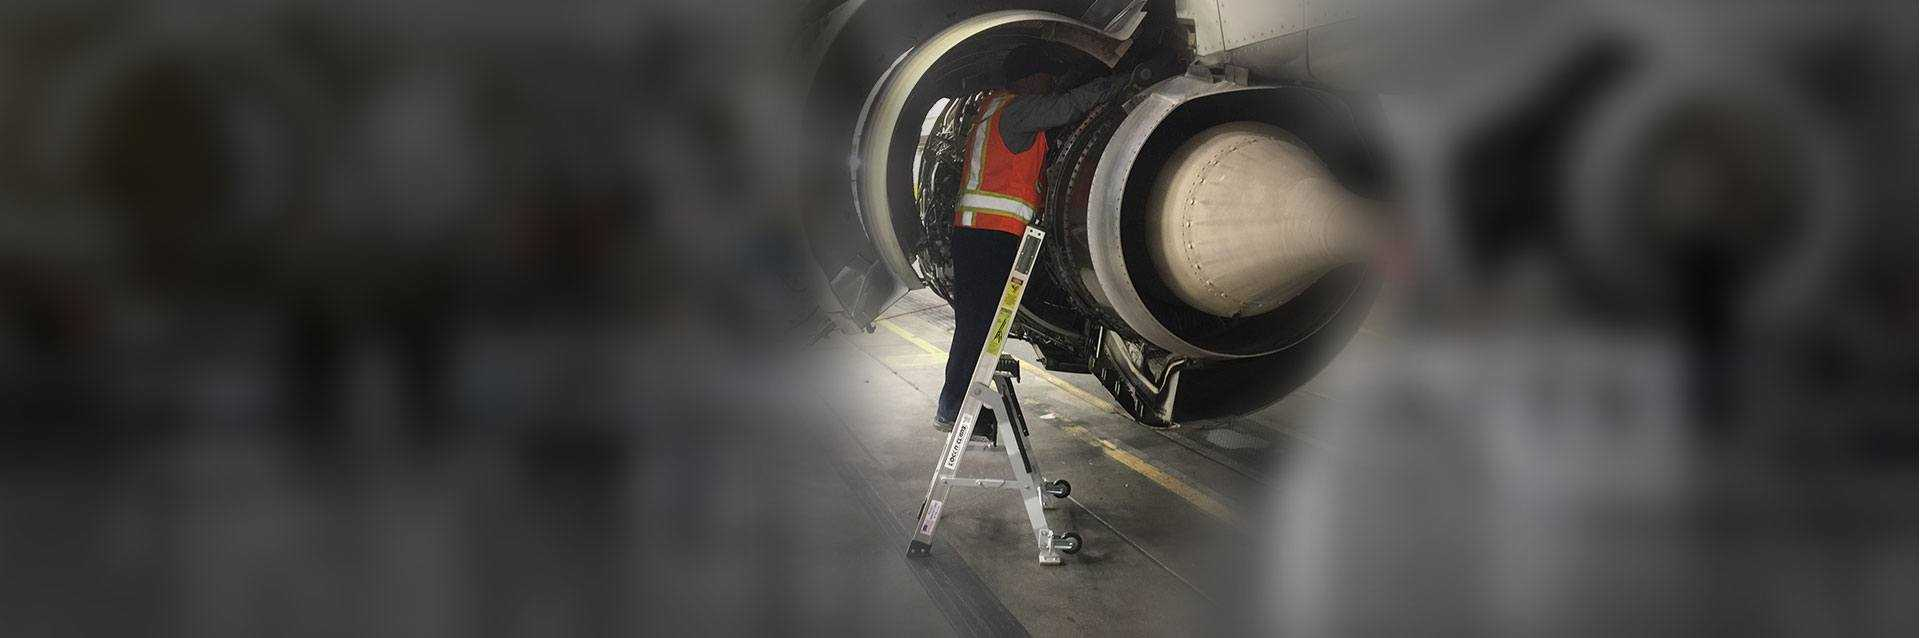 5 Foot Mini Pylon With Technician Working Inside Engine Of Boeing 737 Hero Shot